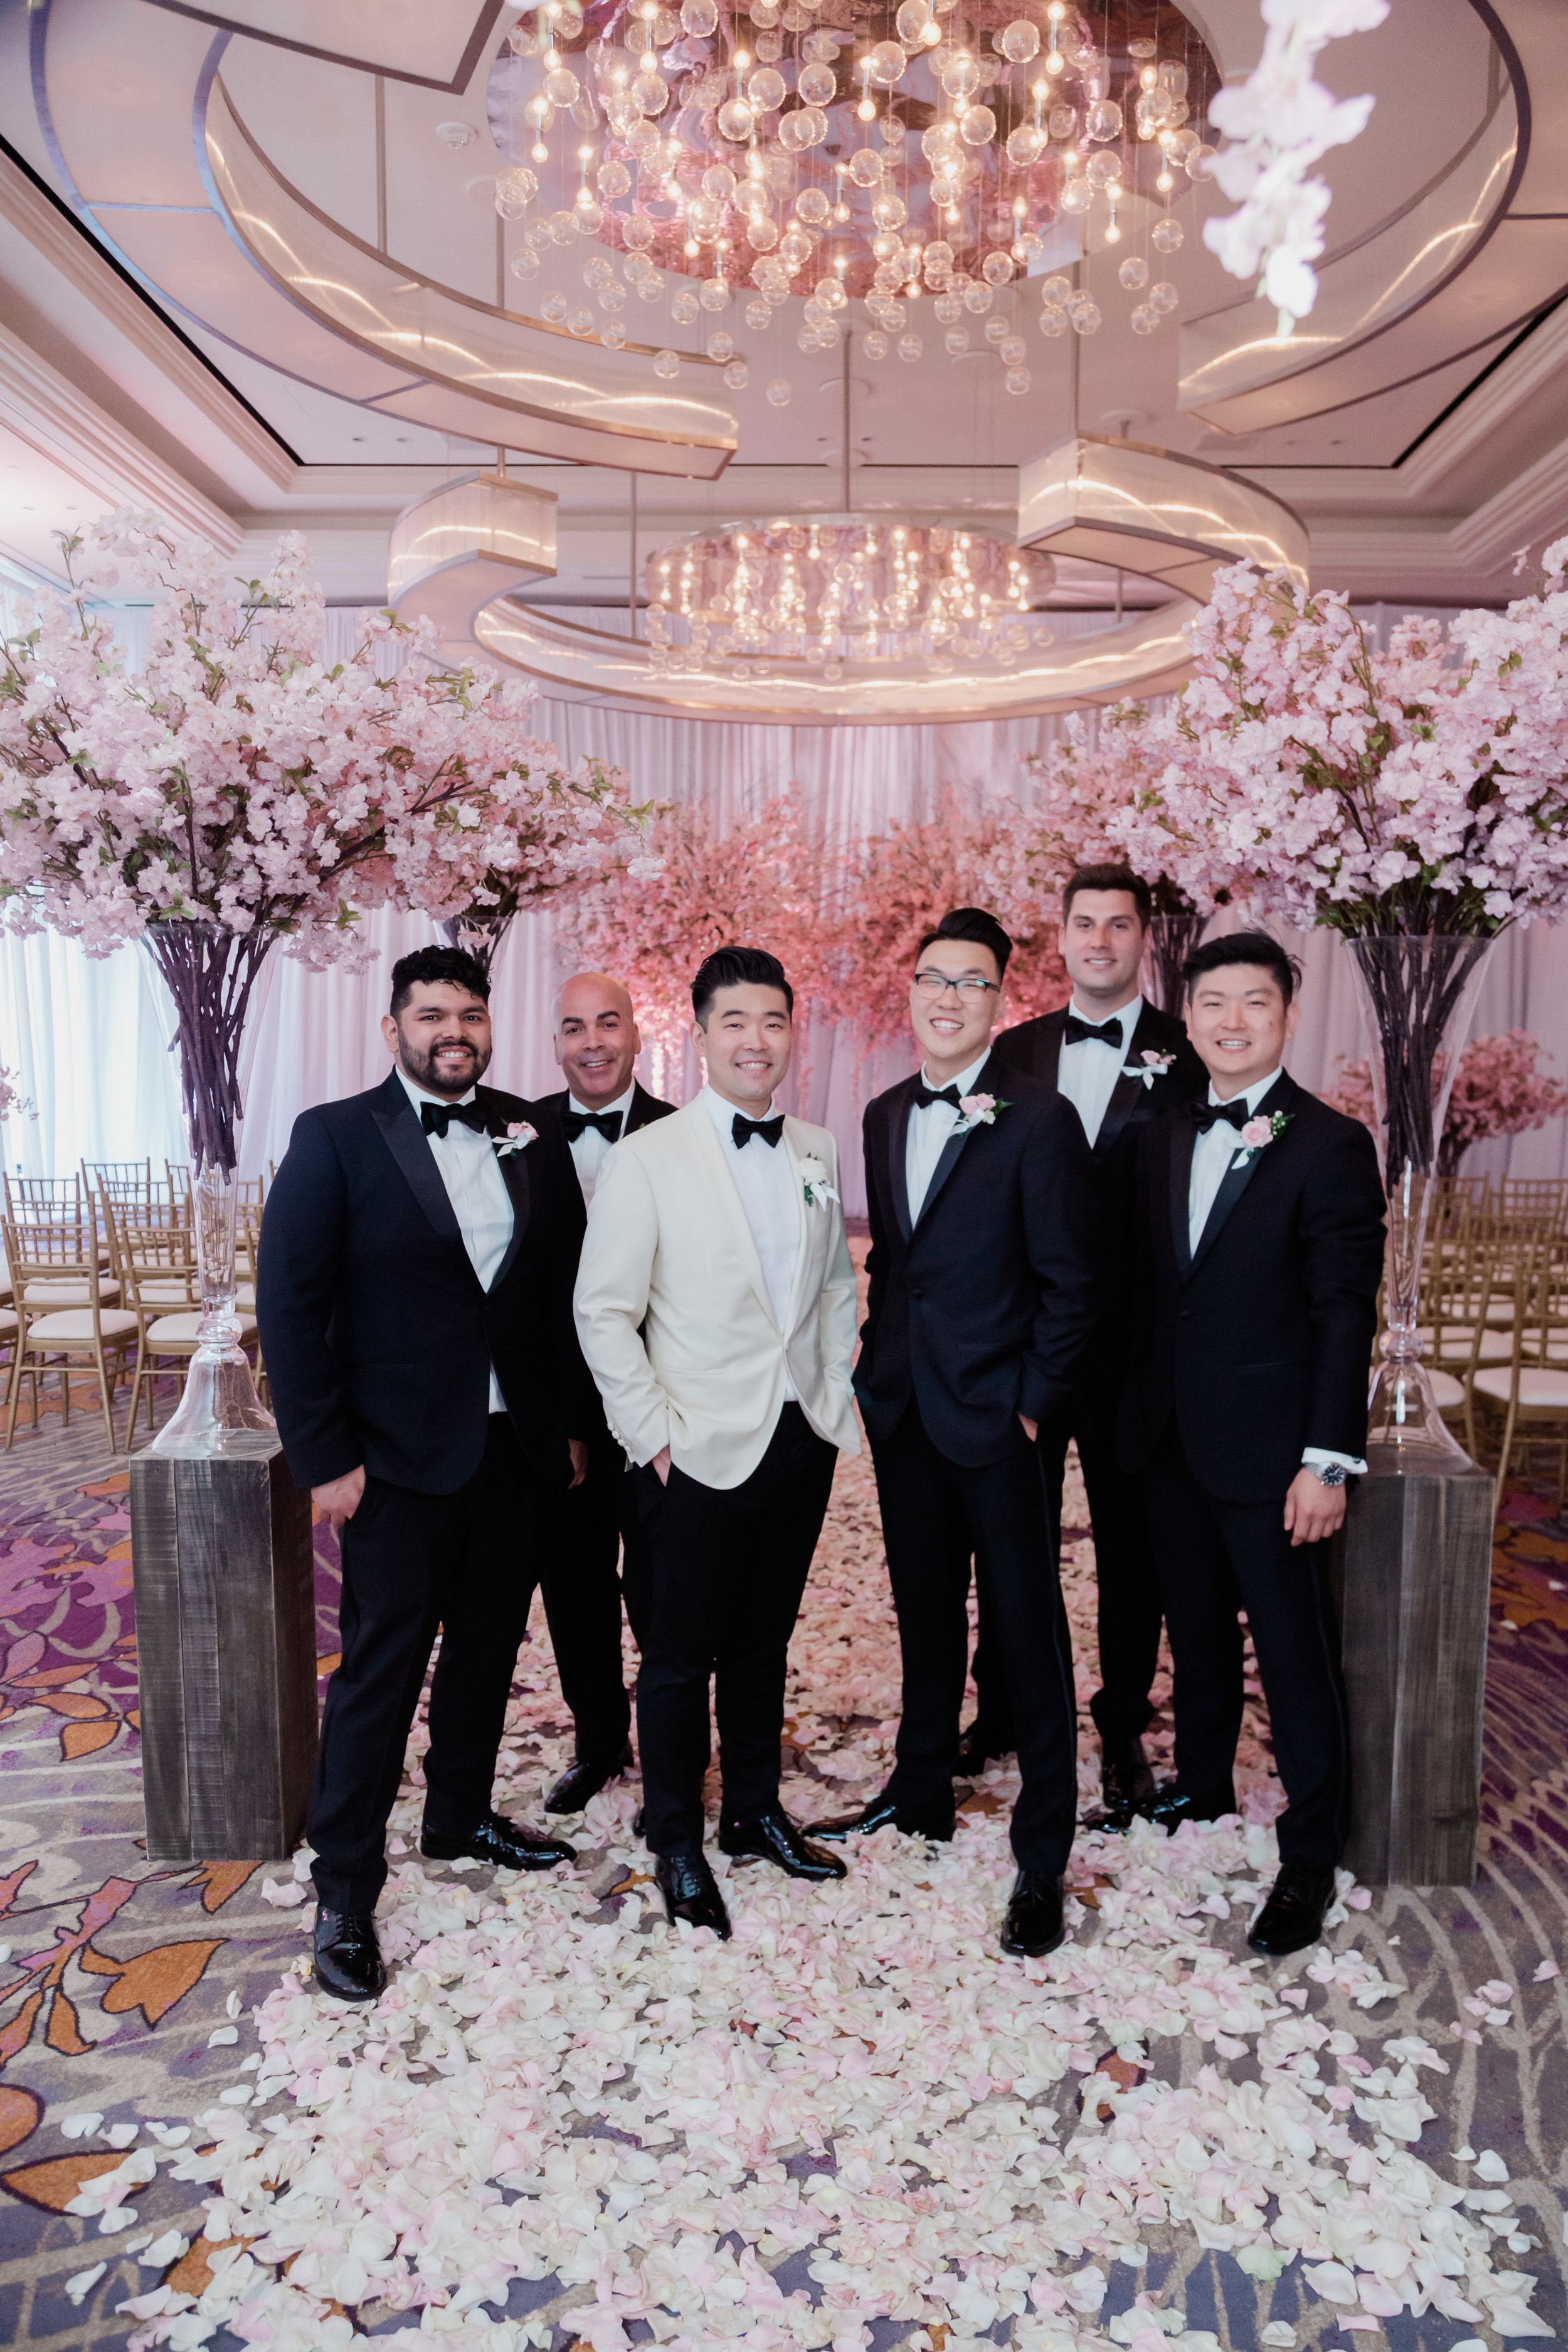 Groomsmen at a pretty in pink cherry blossom wedding. Las Vegas Wedding Planner Andrea Eppolito. Photo by Adam Frazier.